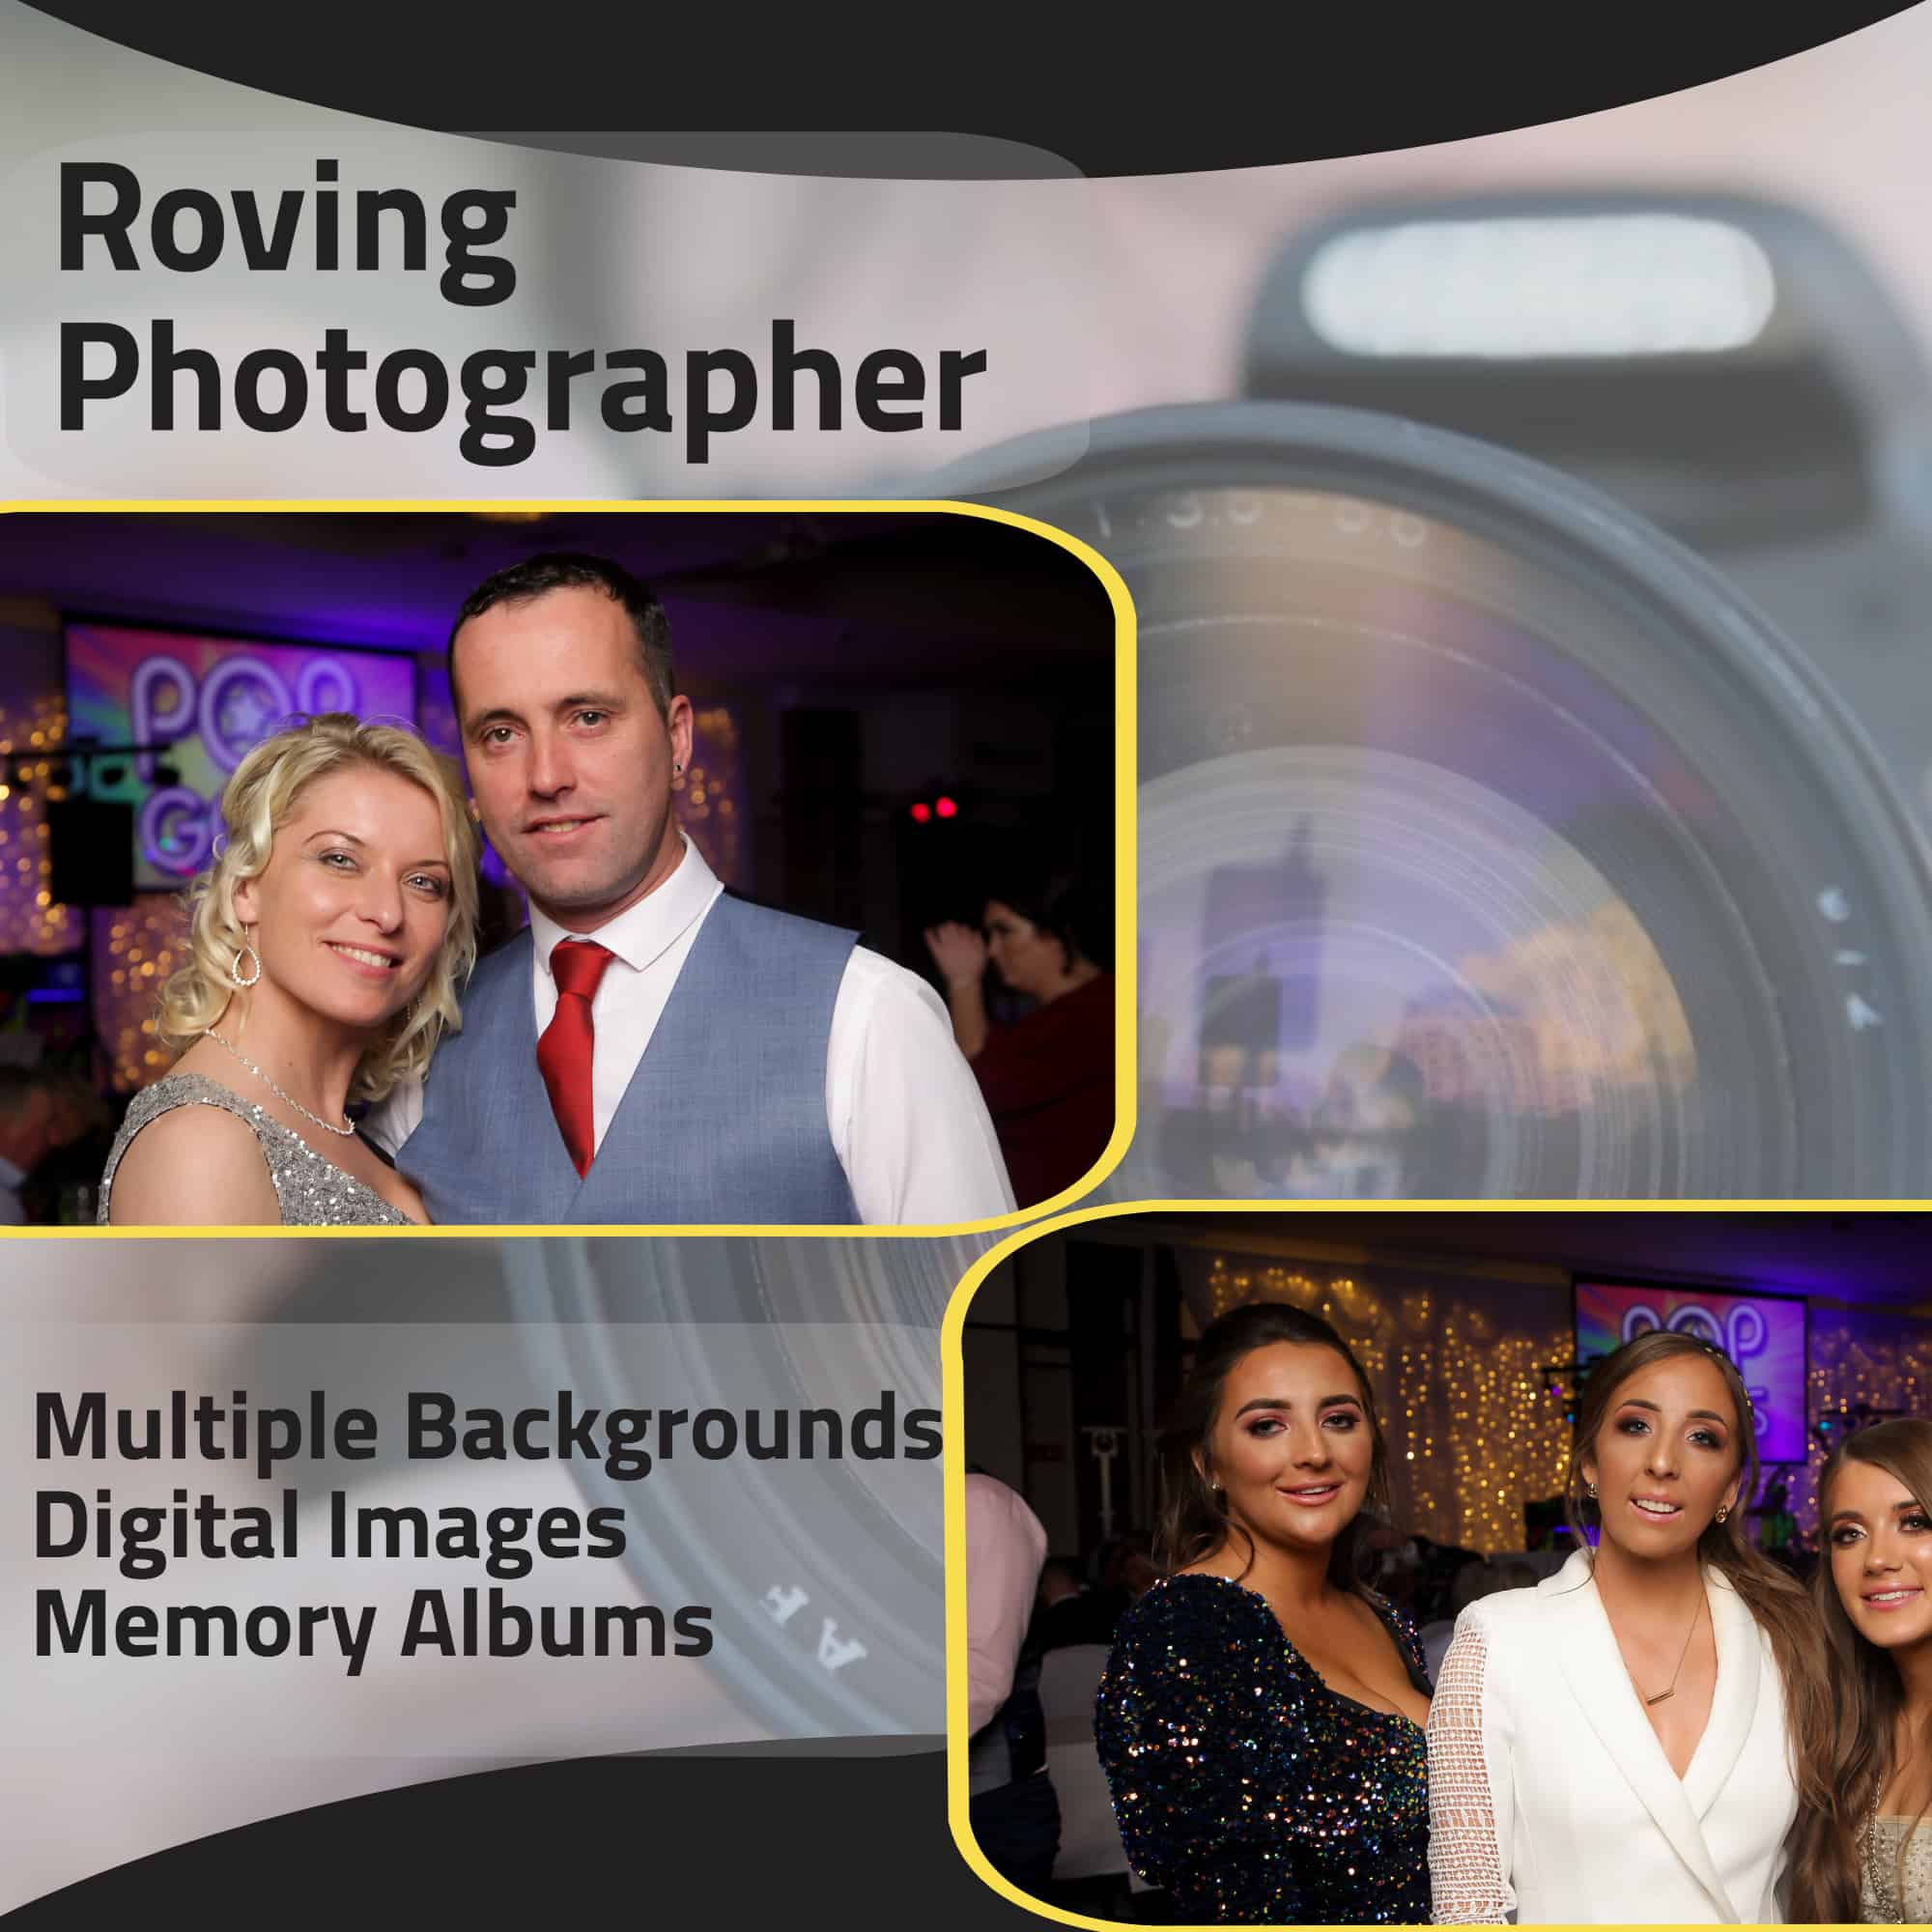 Roving Photographer at your event with instant printing